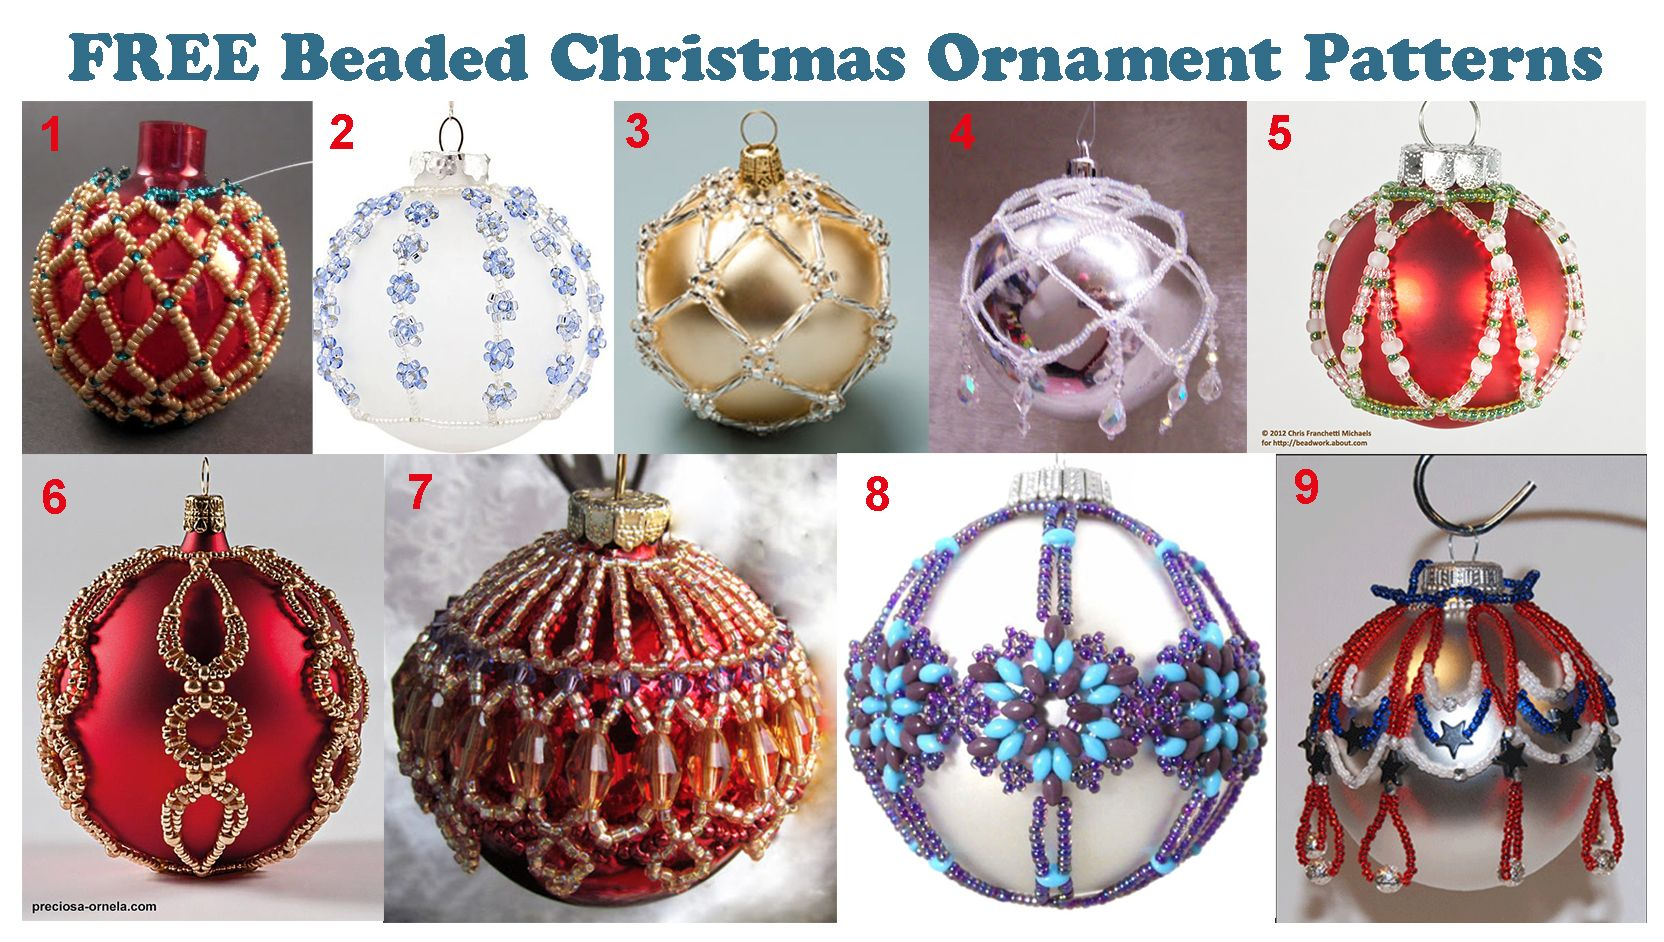 Pin By Linda Cowser On Free Bead Patterns Beaded Christmas